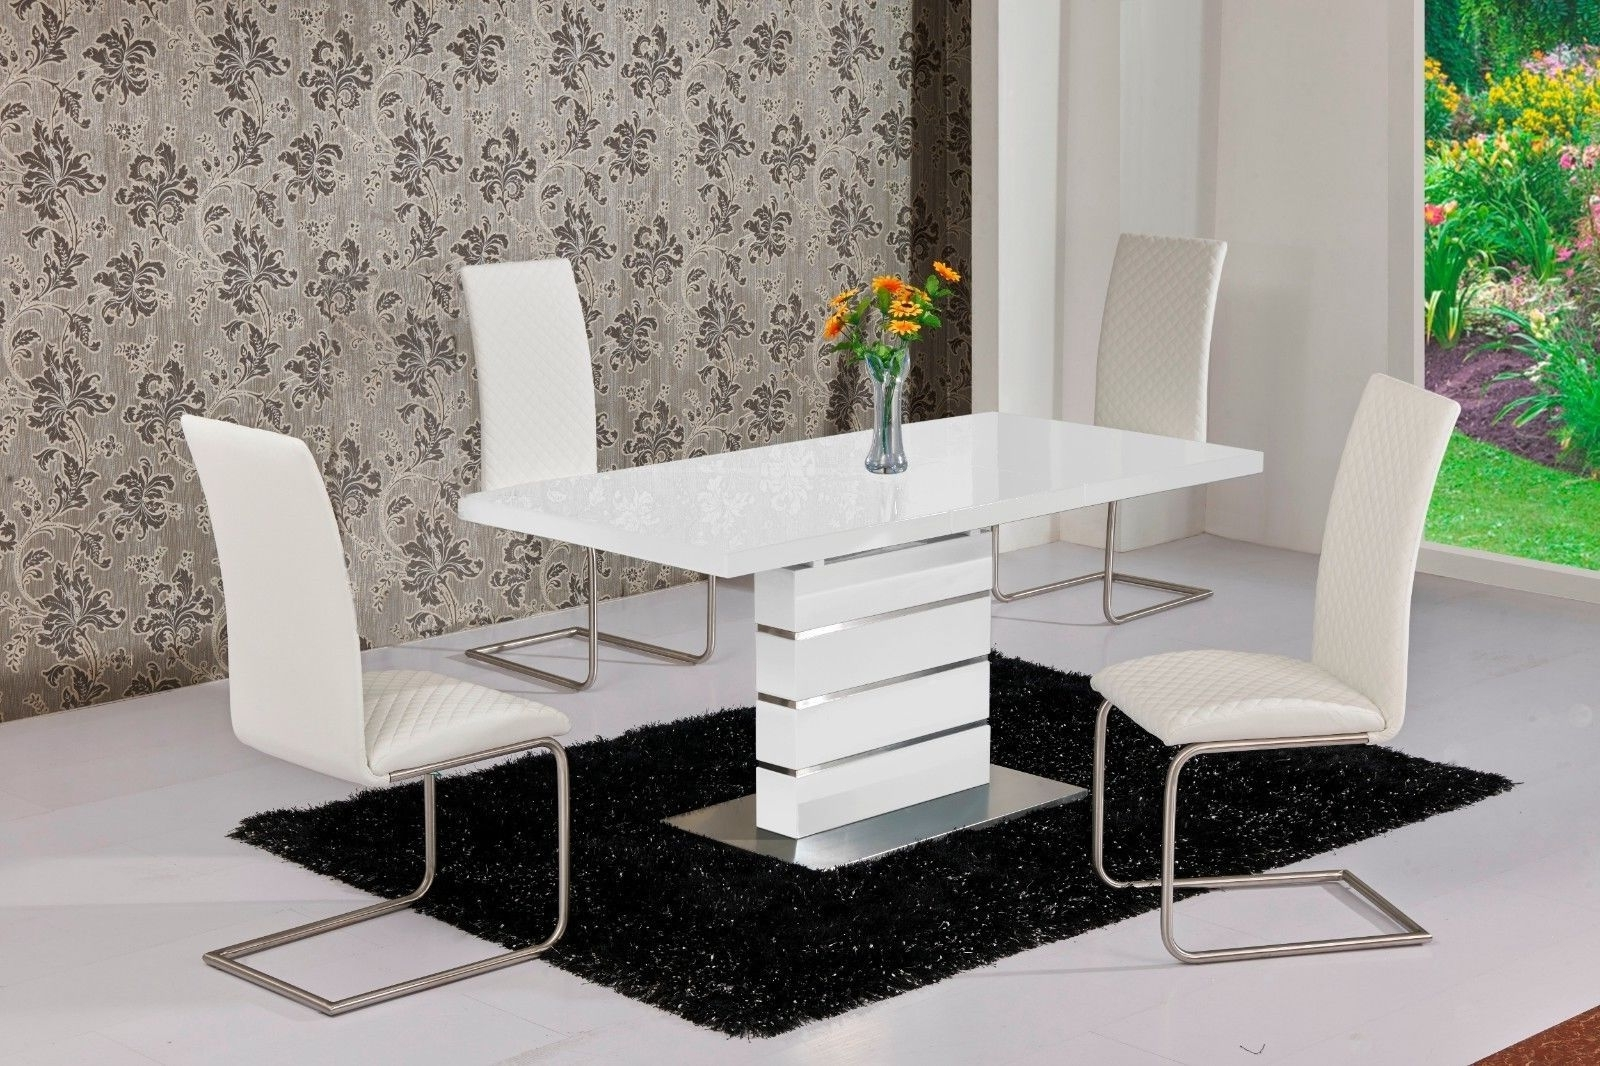 Mace High Gloss Extending 120 160 Dining Table & Chair Set – White Pertaining To Well Known White Dining Tables And 6 Chairs (View 12 of 25)